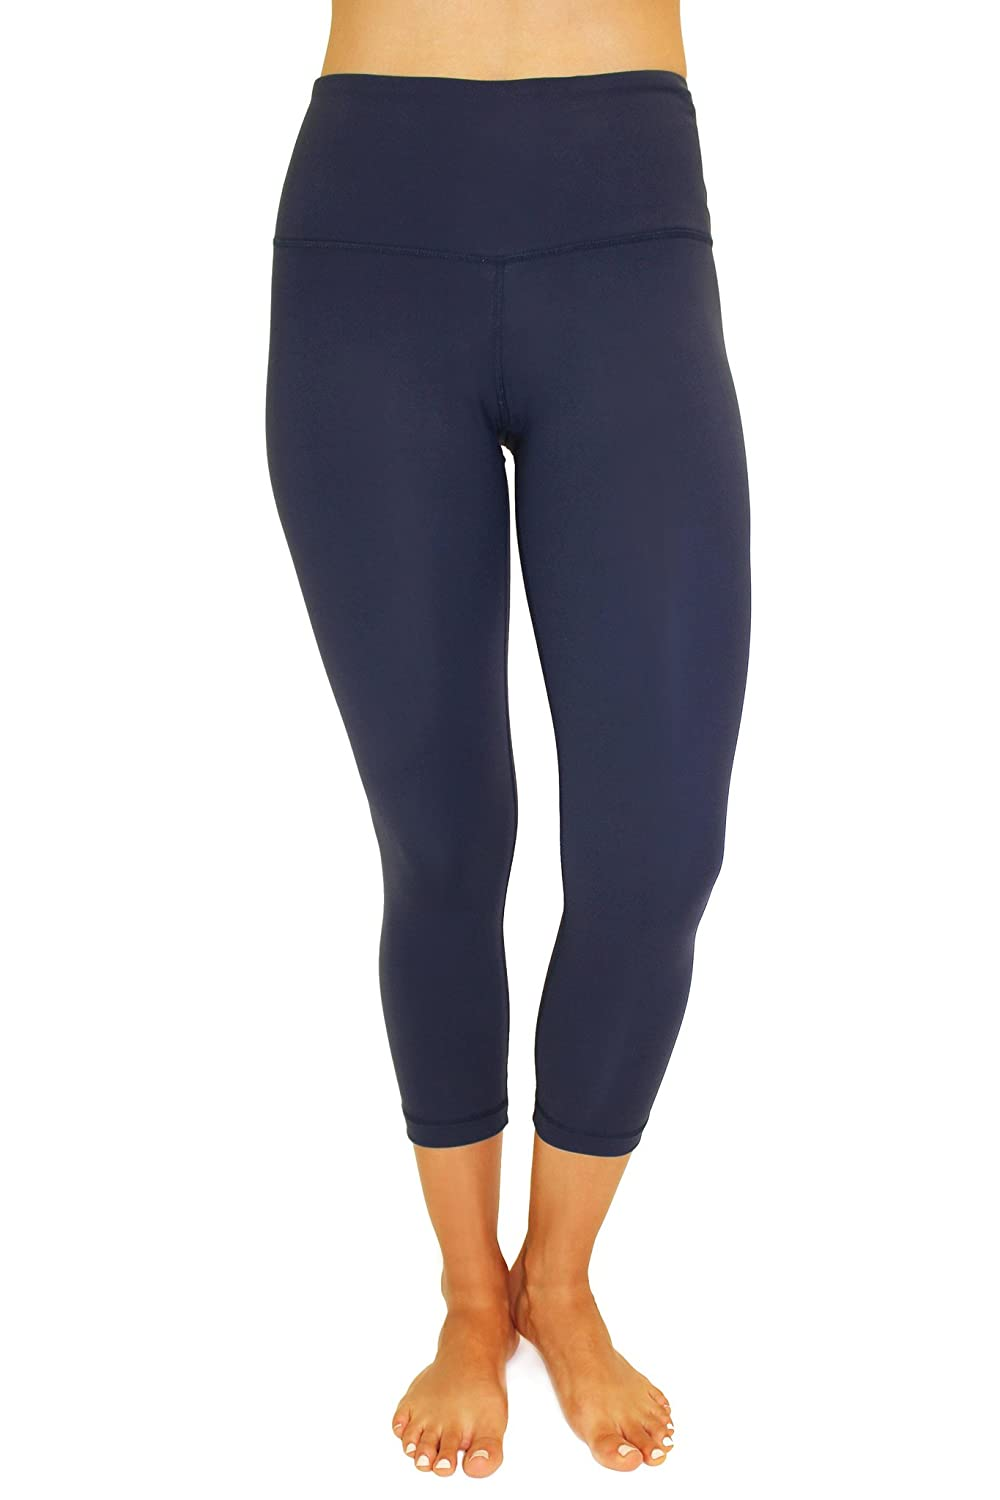 45c9e0e357677 Order a pair of the High Waist Tummy Control Power Flex Capri by 90 Degree  by Reflex and say hello to a yoga capri you'll never want to take off!